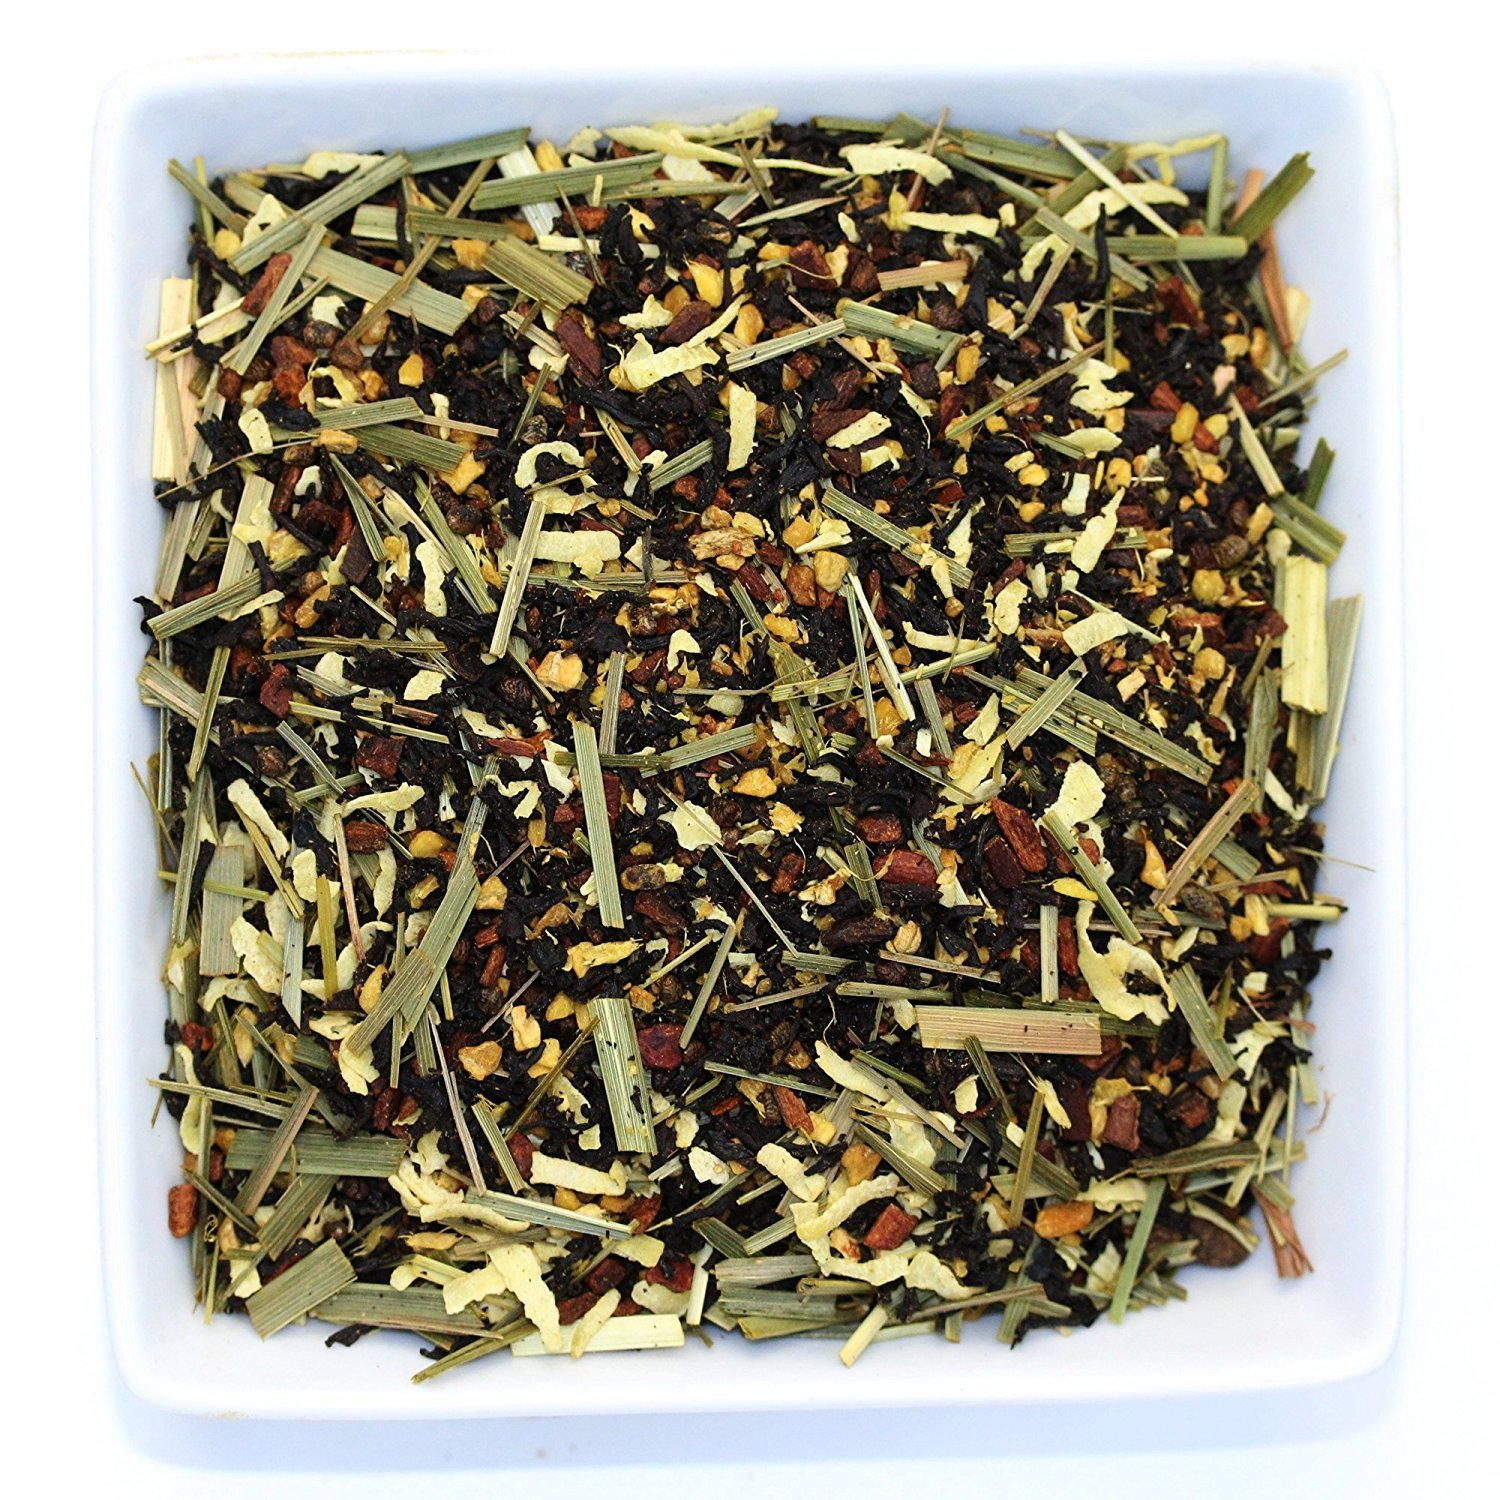 Tealyra - Thai Chai - Ginger Coconut and Lemongrass with Black Loose Leaf Tea - Exotic Unique Blend - Caffeine Medium - All Natural Ingredients - 110g (4-ounce)